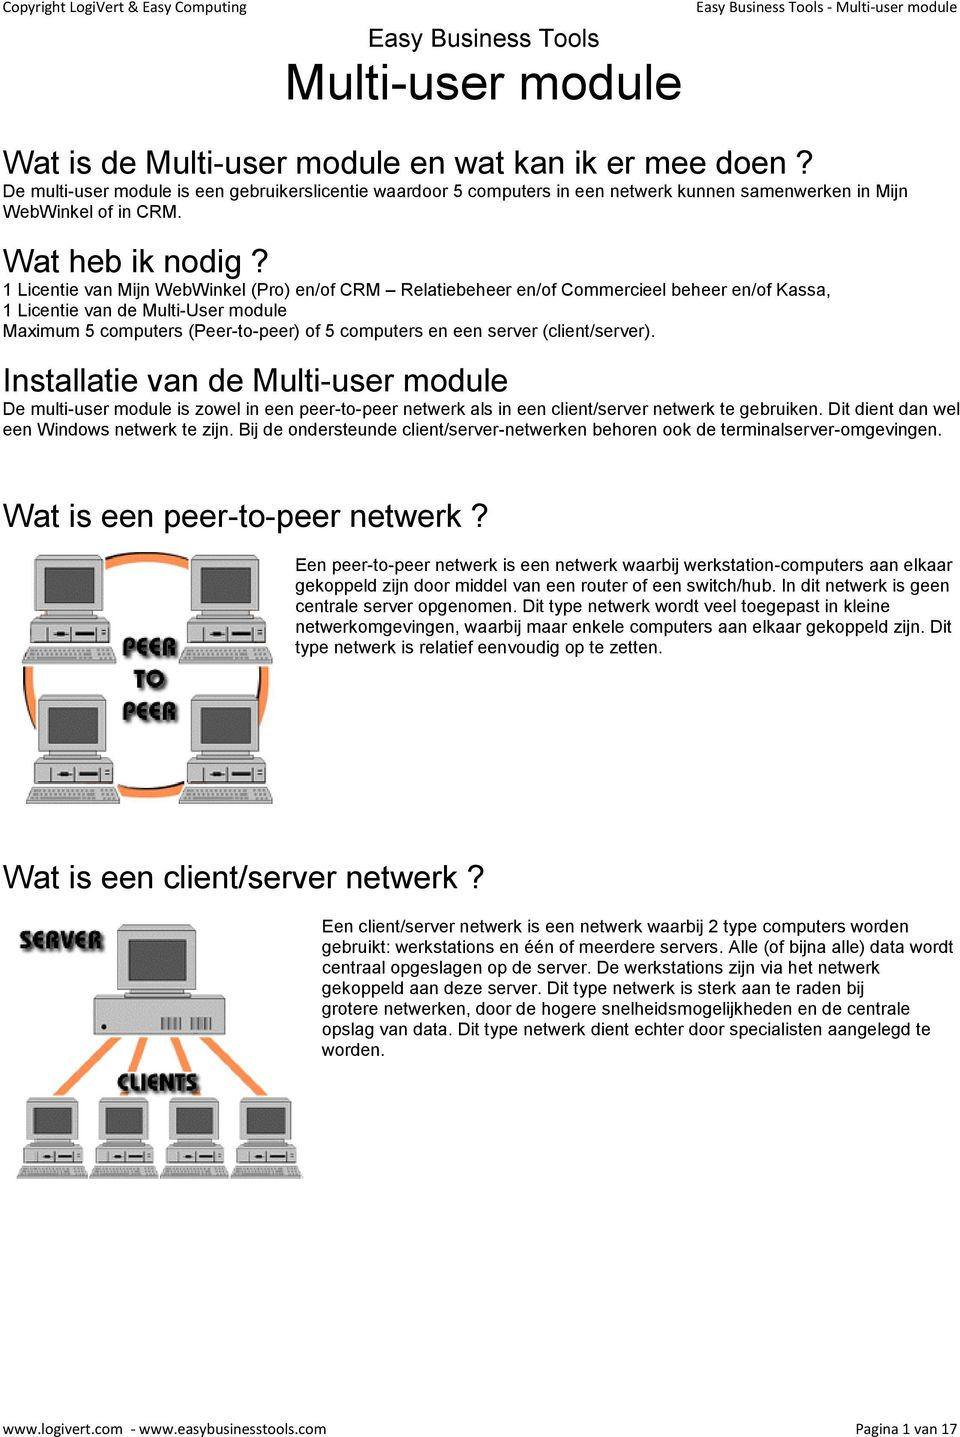 1 Licentie van Mijn WebWinkel (Pro) en/of CRM Relatiebeheer en/of Commercieel beheer en/of Kassa, 1 Licentie van de Multi-User module Maximum 5 computers (Peer-to-peer) of 5 computers en een server